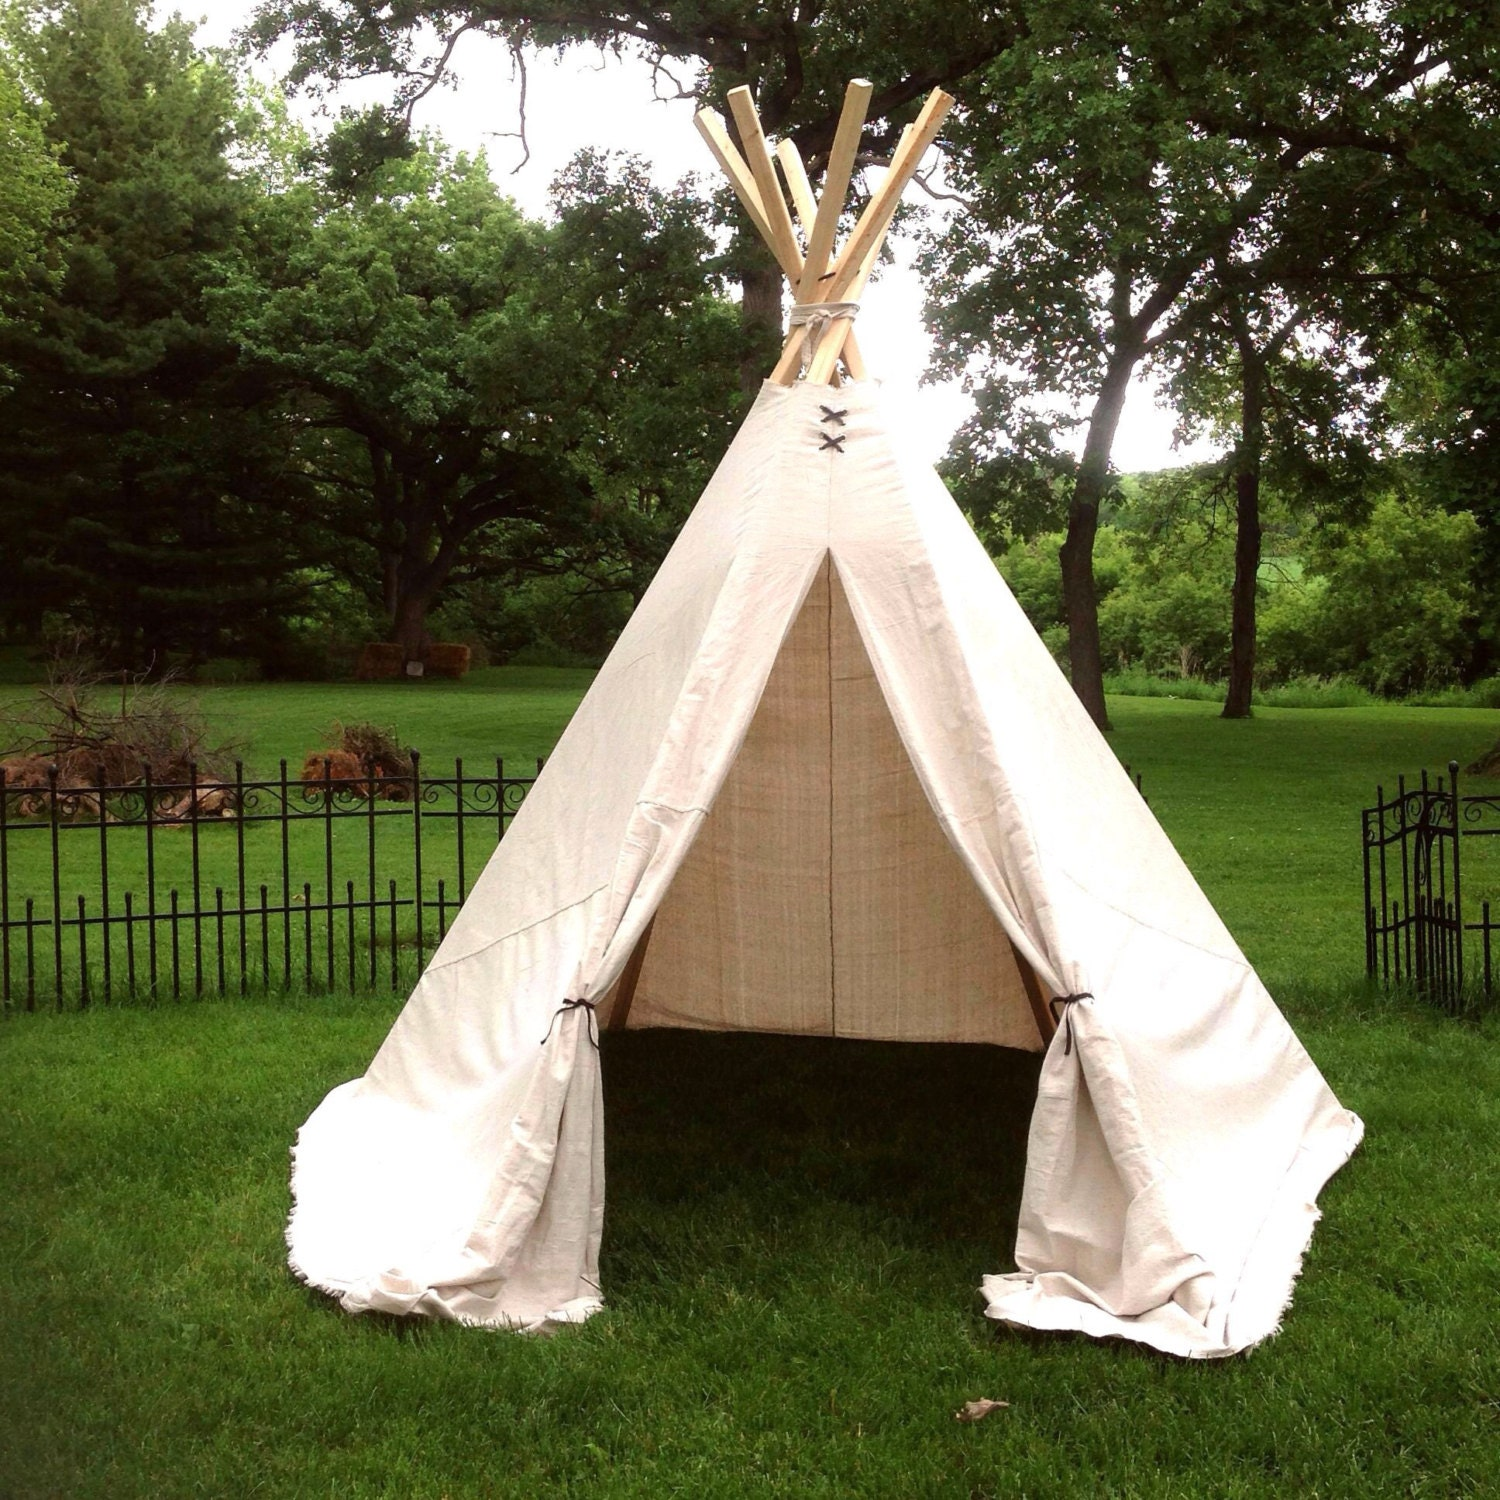 huge teepee 8 5ft tall 10ft x 7 5ft wide no poles